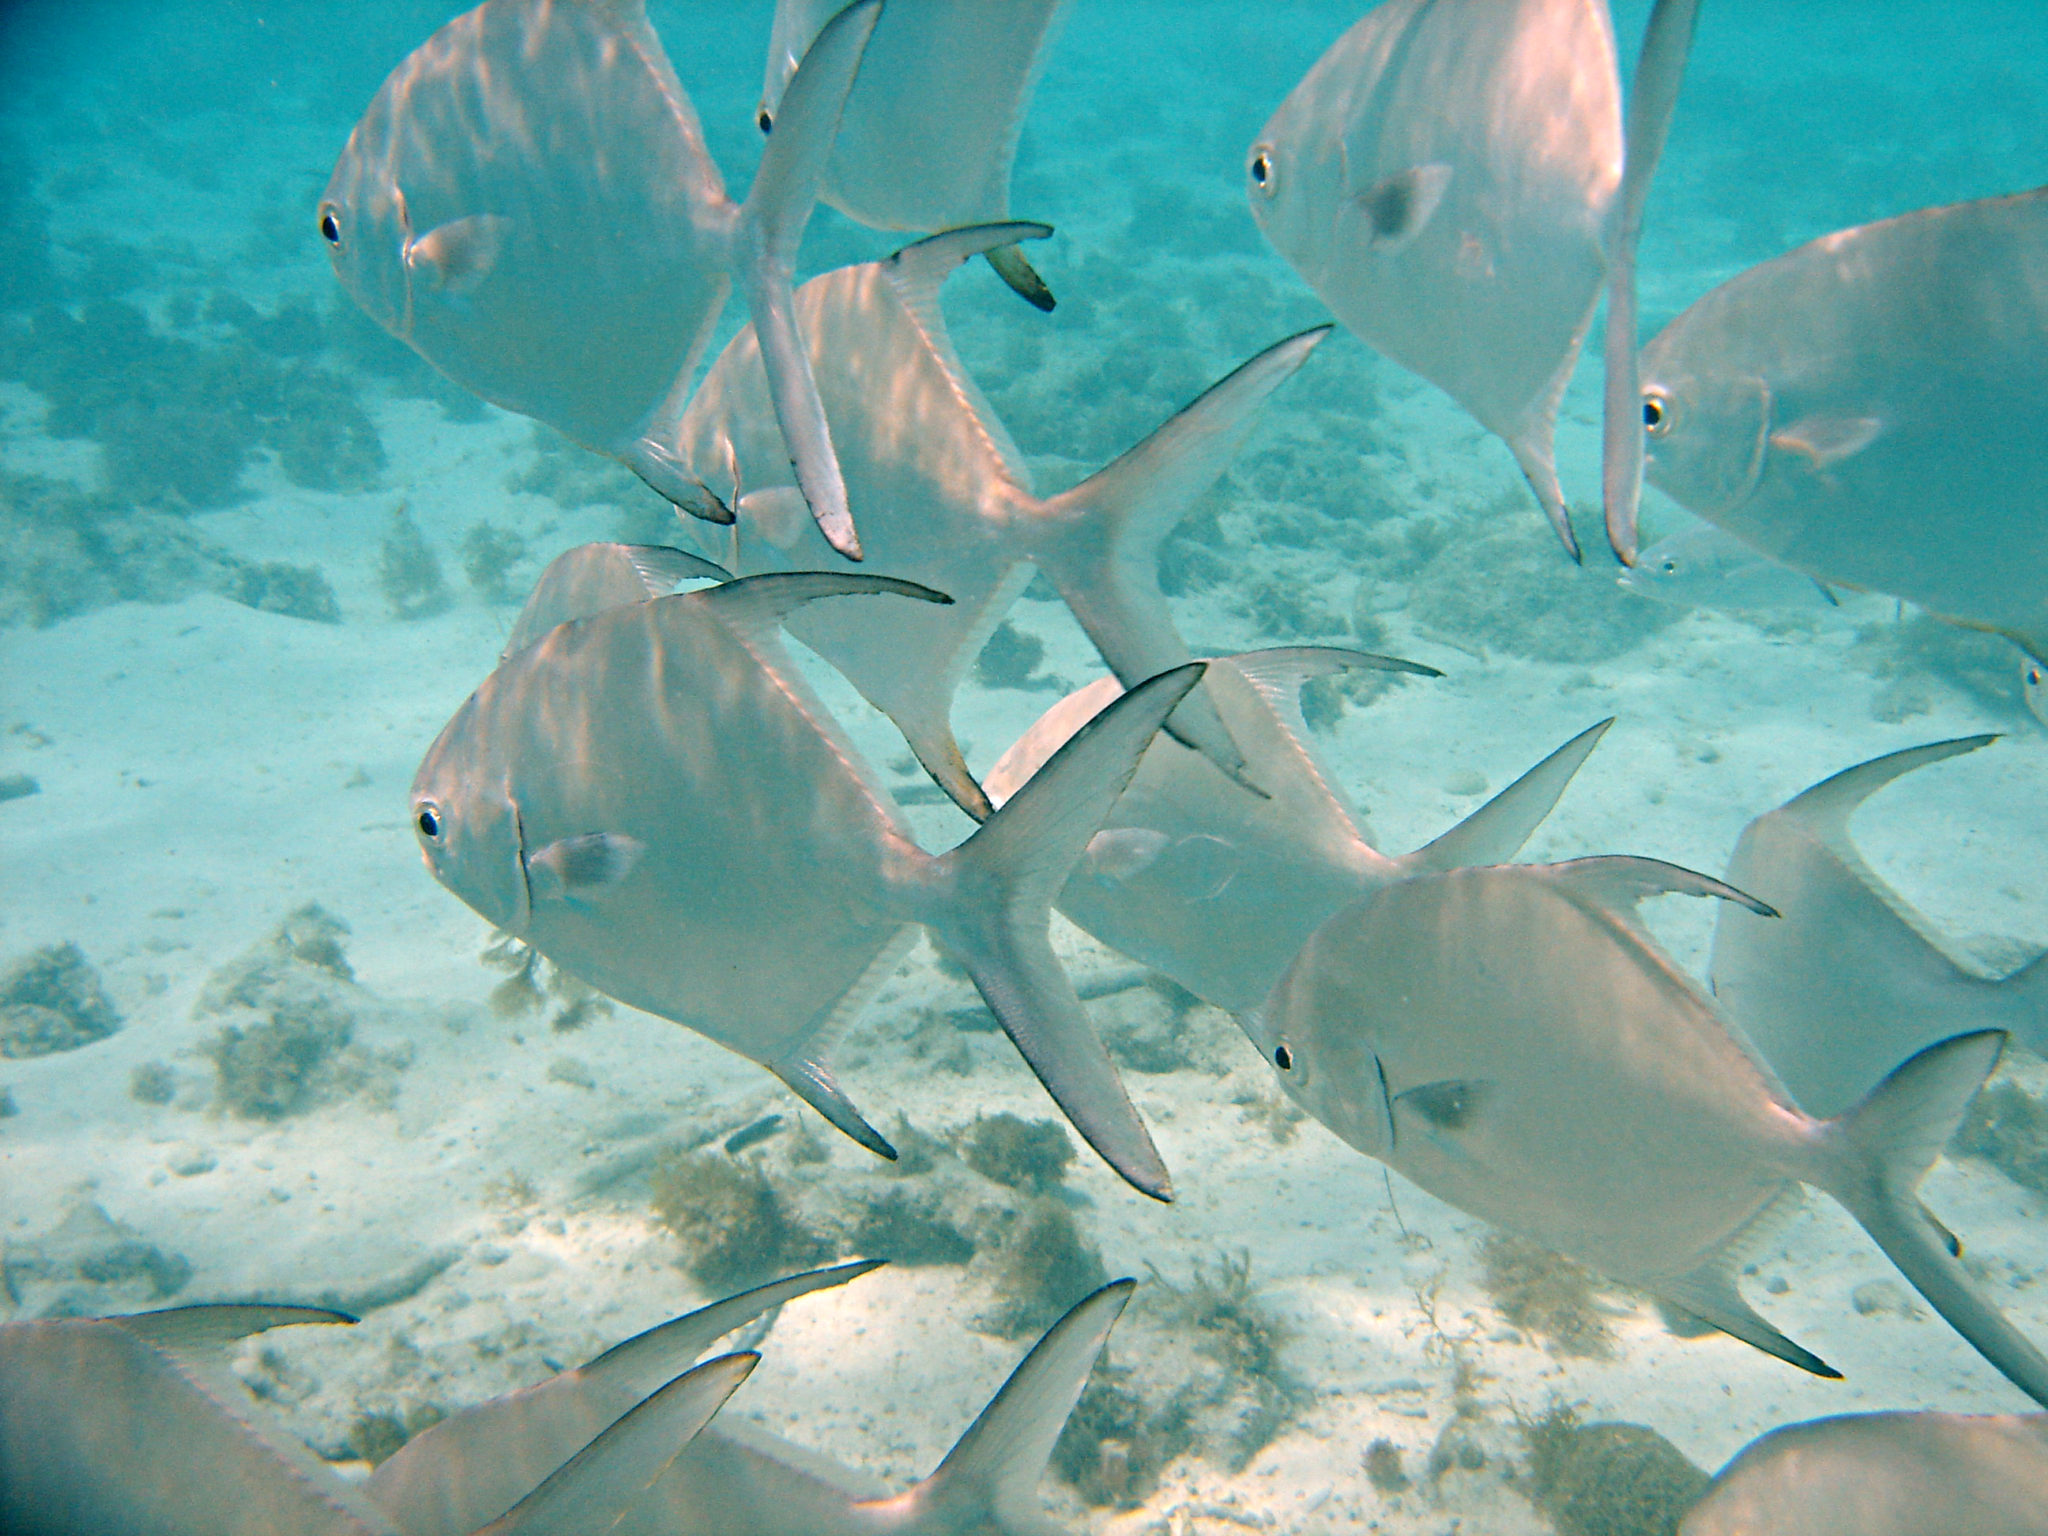 Republique_dominicaine_roadtrip_voyage_bahia_banc_poisson_snorkeling